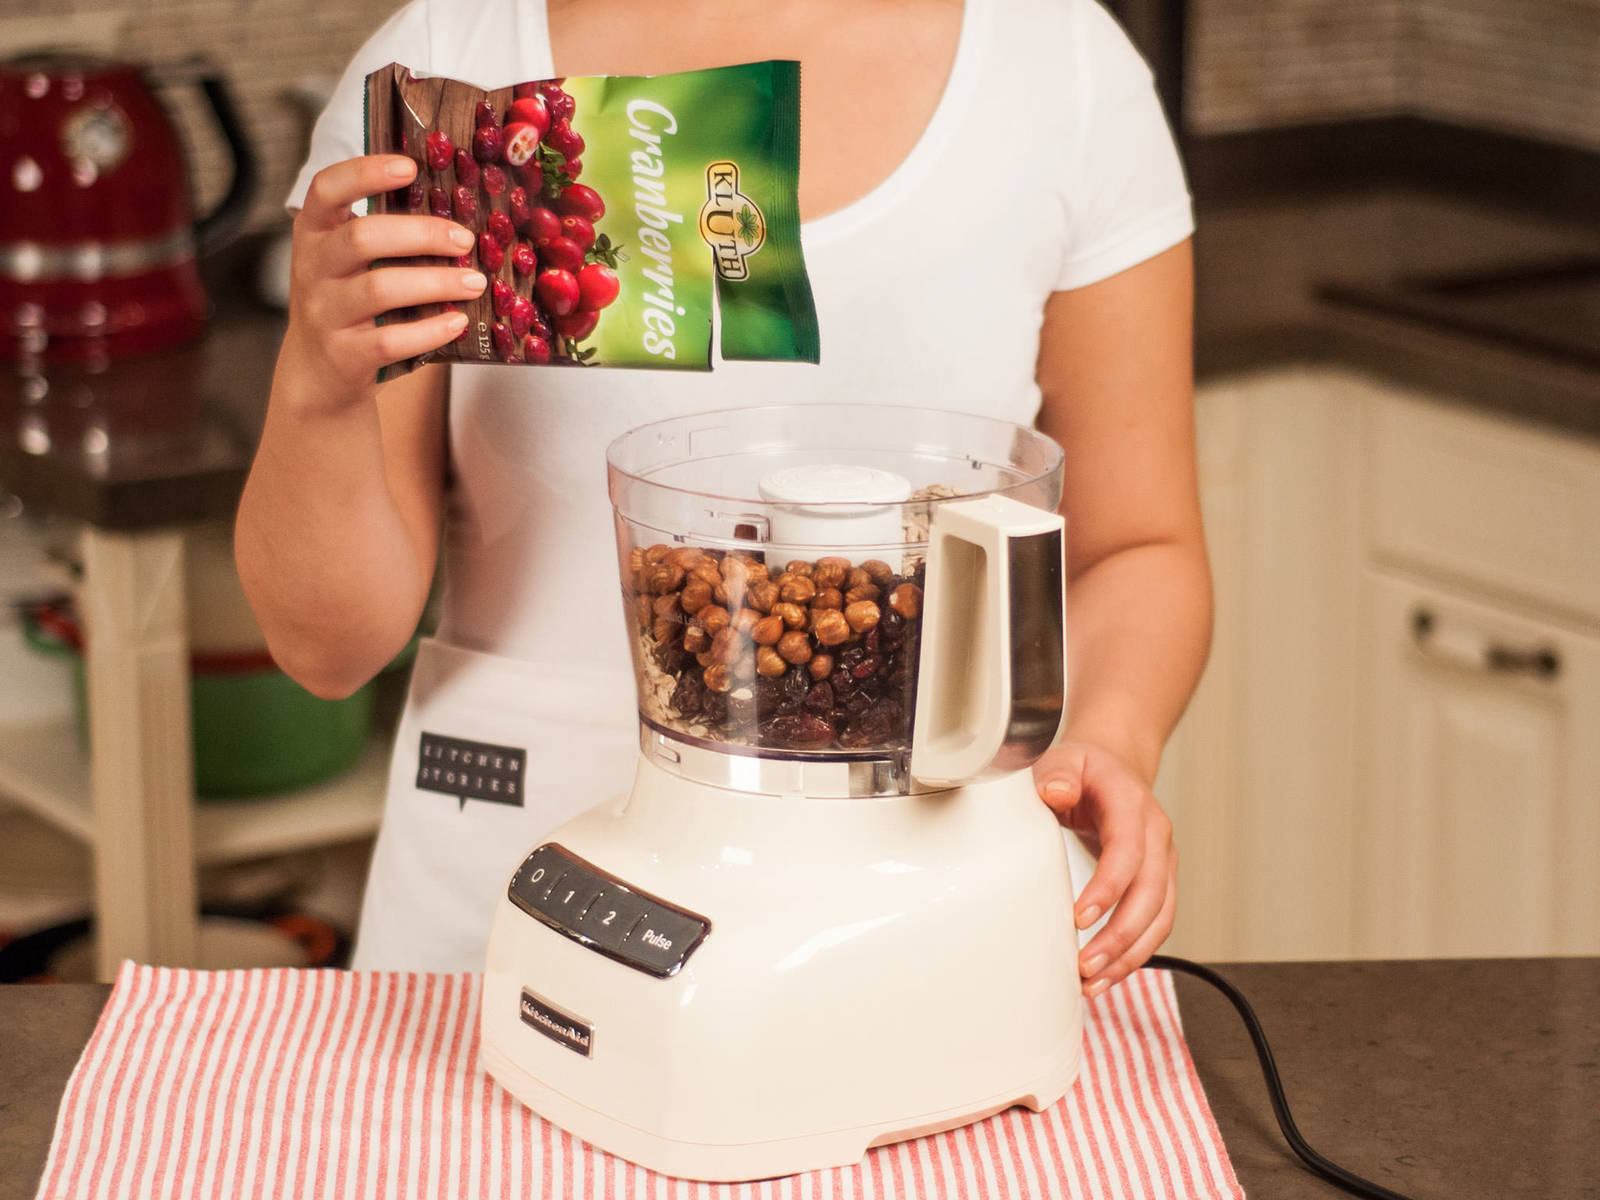 Add oatmeal, hazelnuts, sunflower seeds, dates, apricots, and cranberries to a food processor.